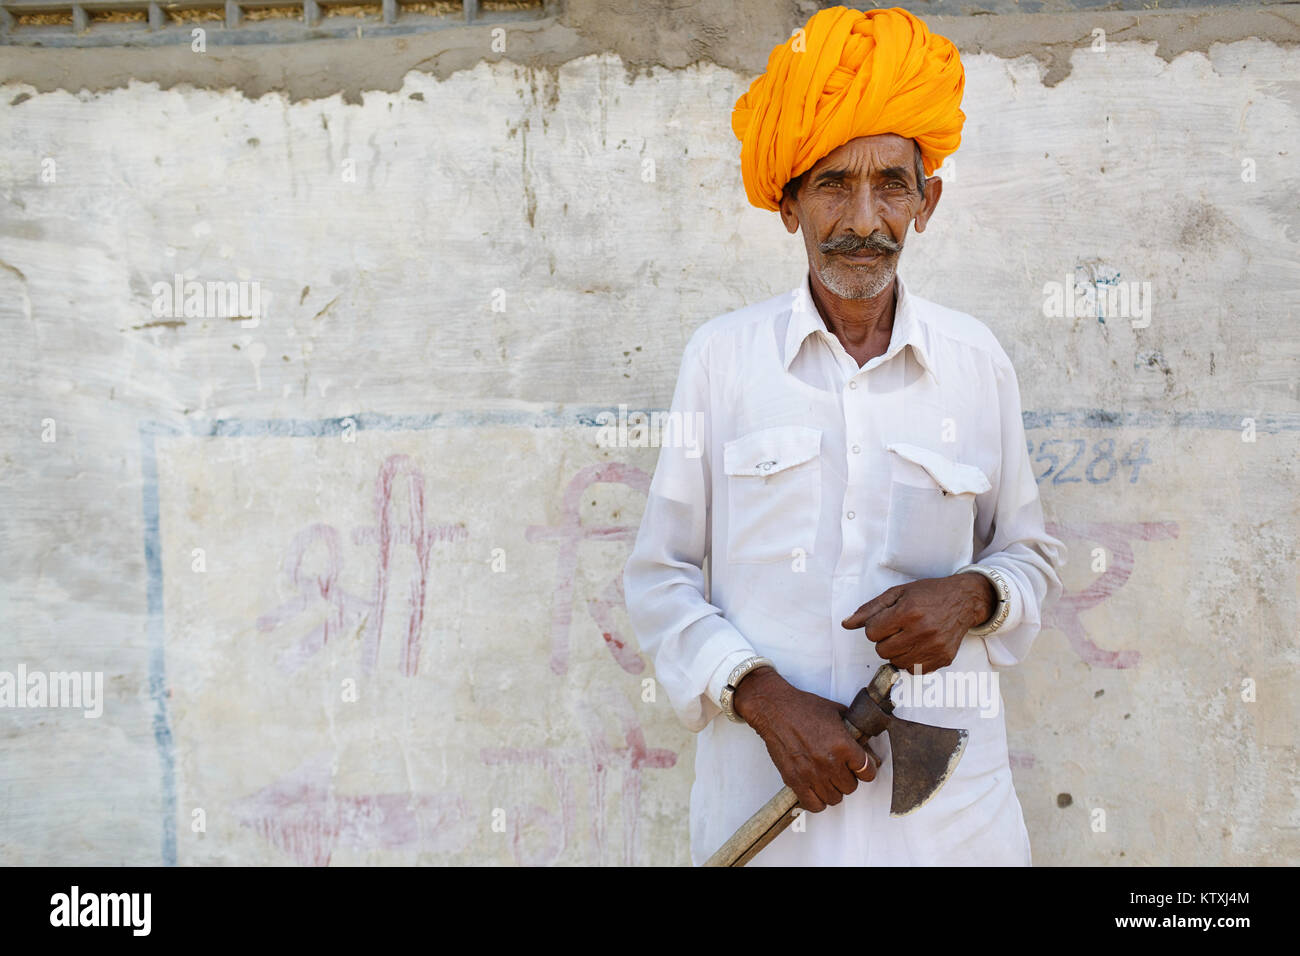 Old indian man in white outfit wearing orange turban, standing in front of white wall in a village near Pushkar, - Stock Image